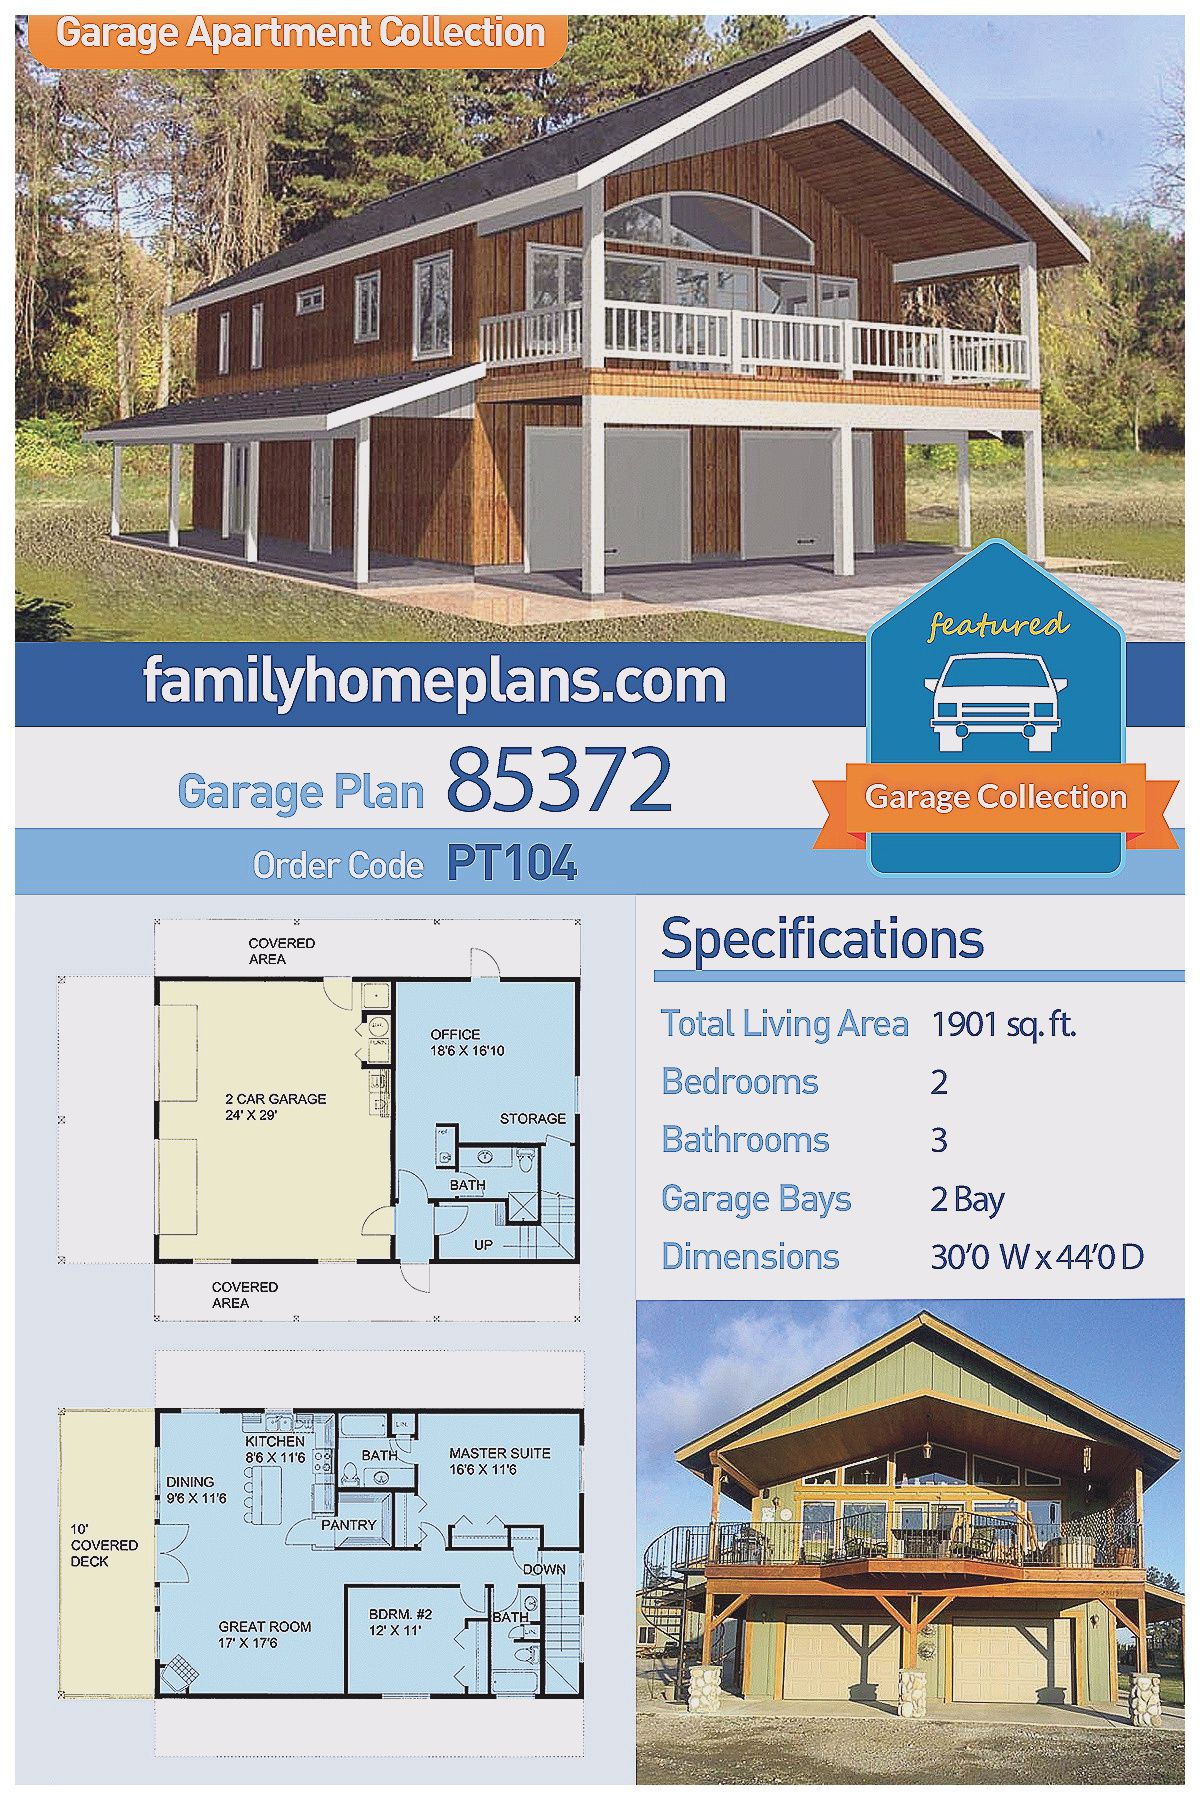 Modern Farmhouse Style 2 Car Garage Apartment Plan Number With 2 Bed 3 Bath Homeplans Rumah Kecil Rumah